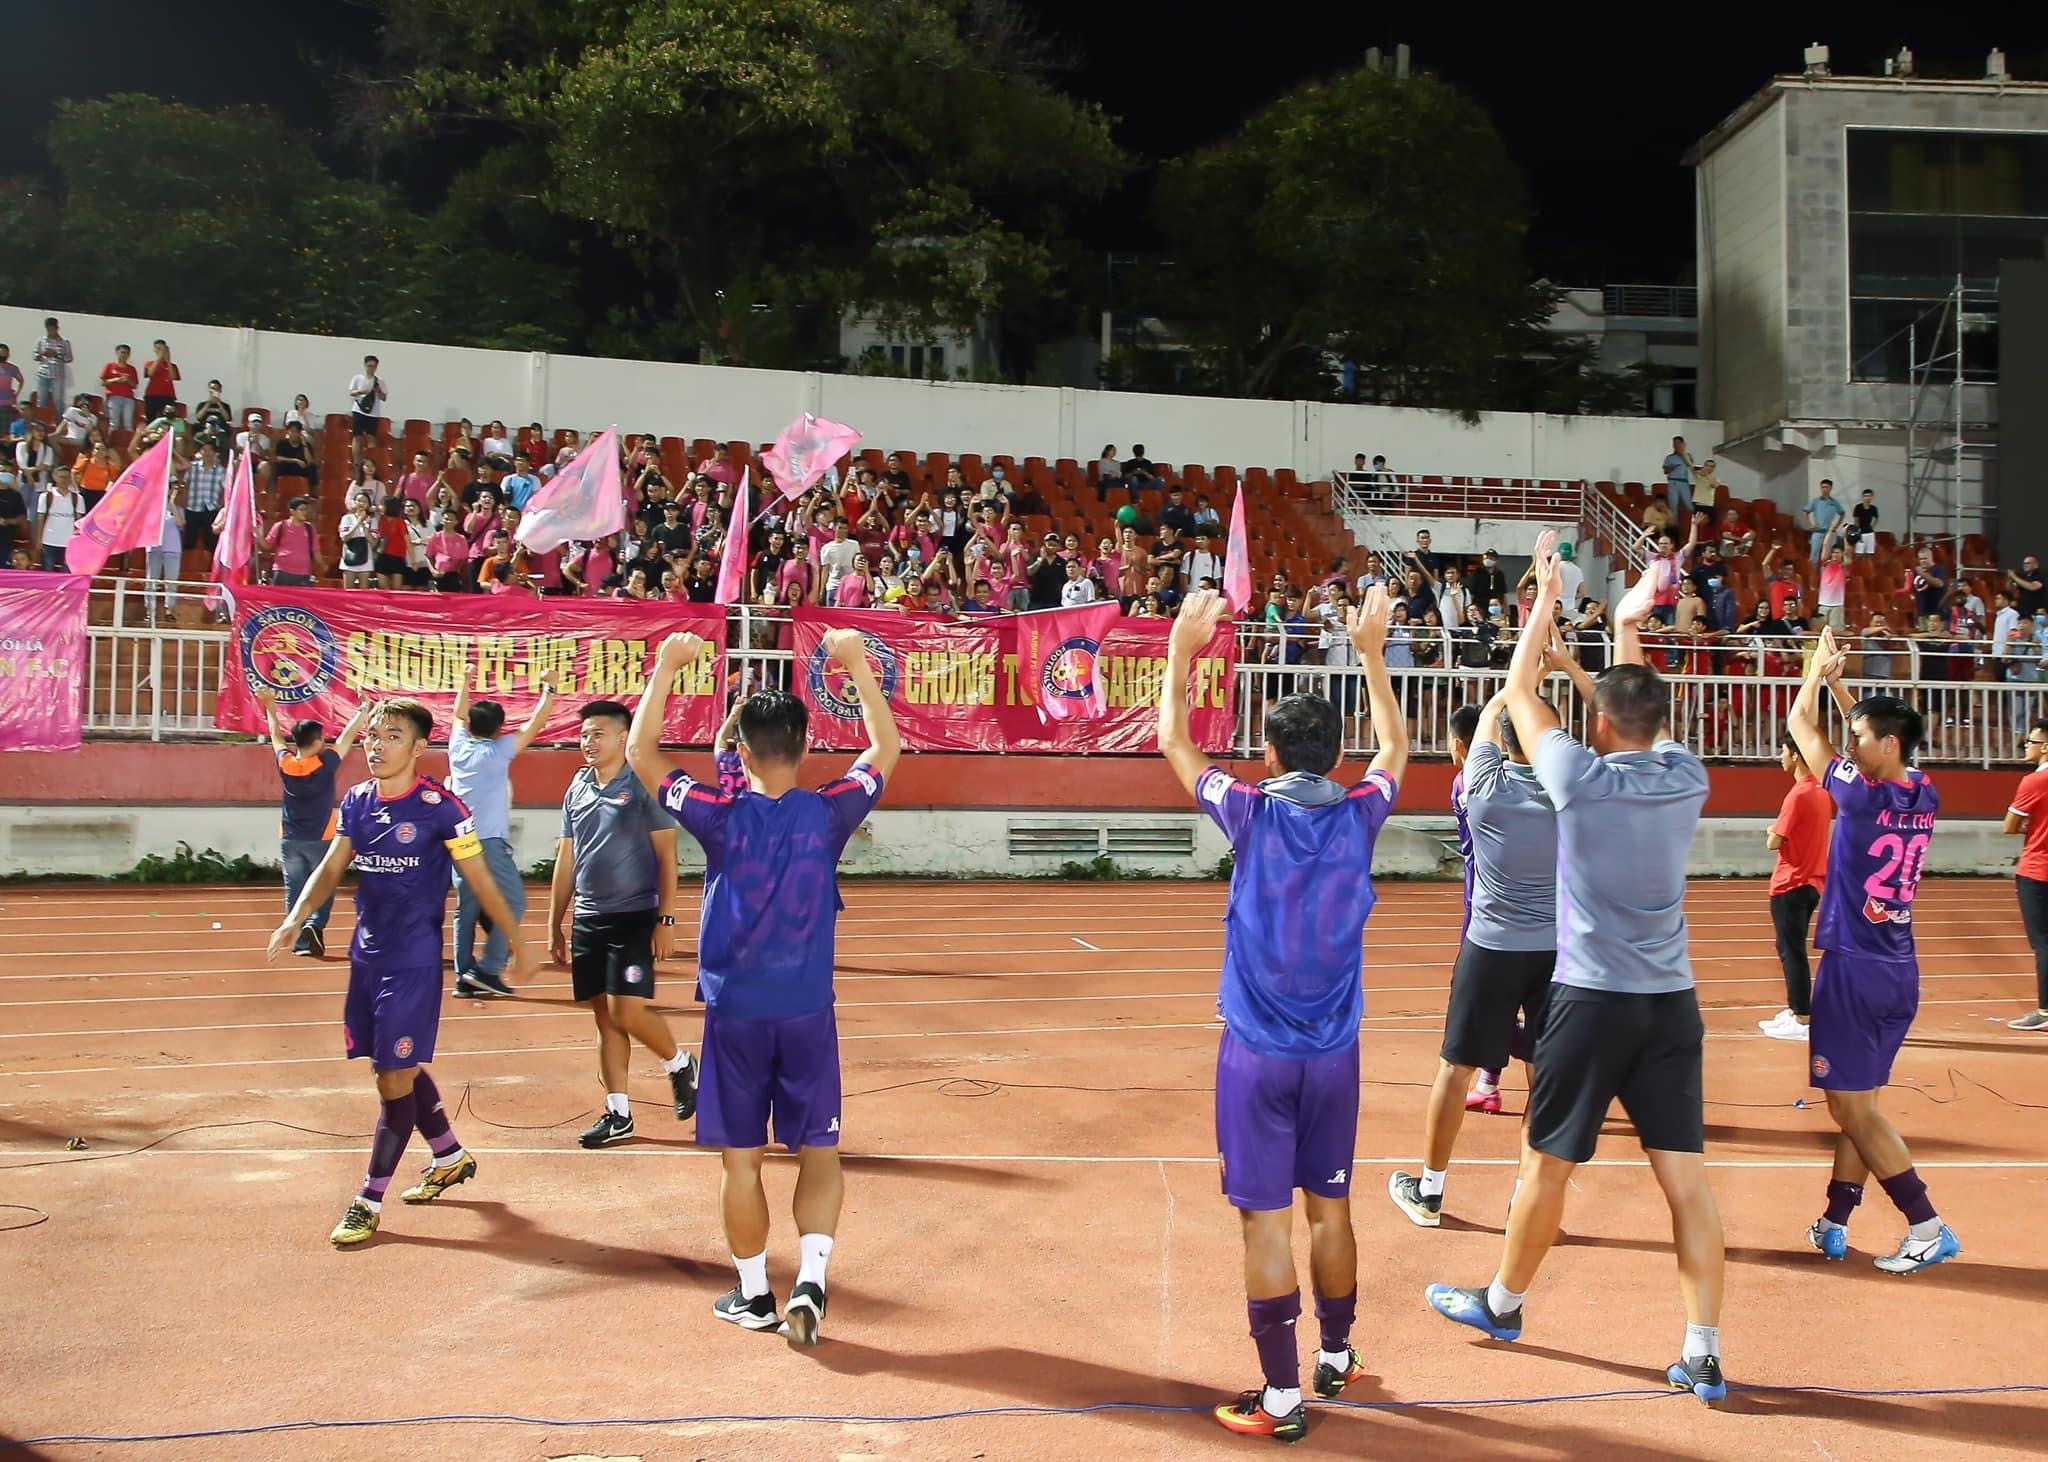 Players of Saigon FC wave at supporters after their game against Ho Chi Minh City FC in the V-League 1's fourth round in Ho Chi Minh City, June 12, 2020. Photo: Dang Hoang / Tuoi Tre Contributor